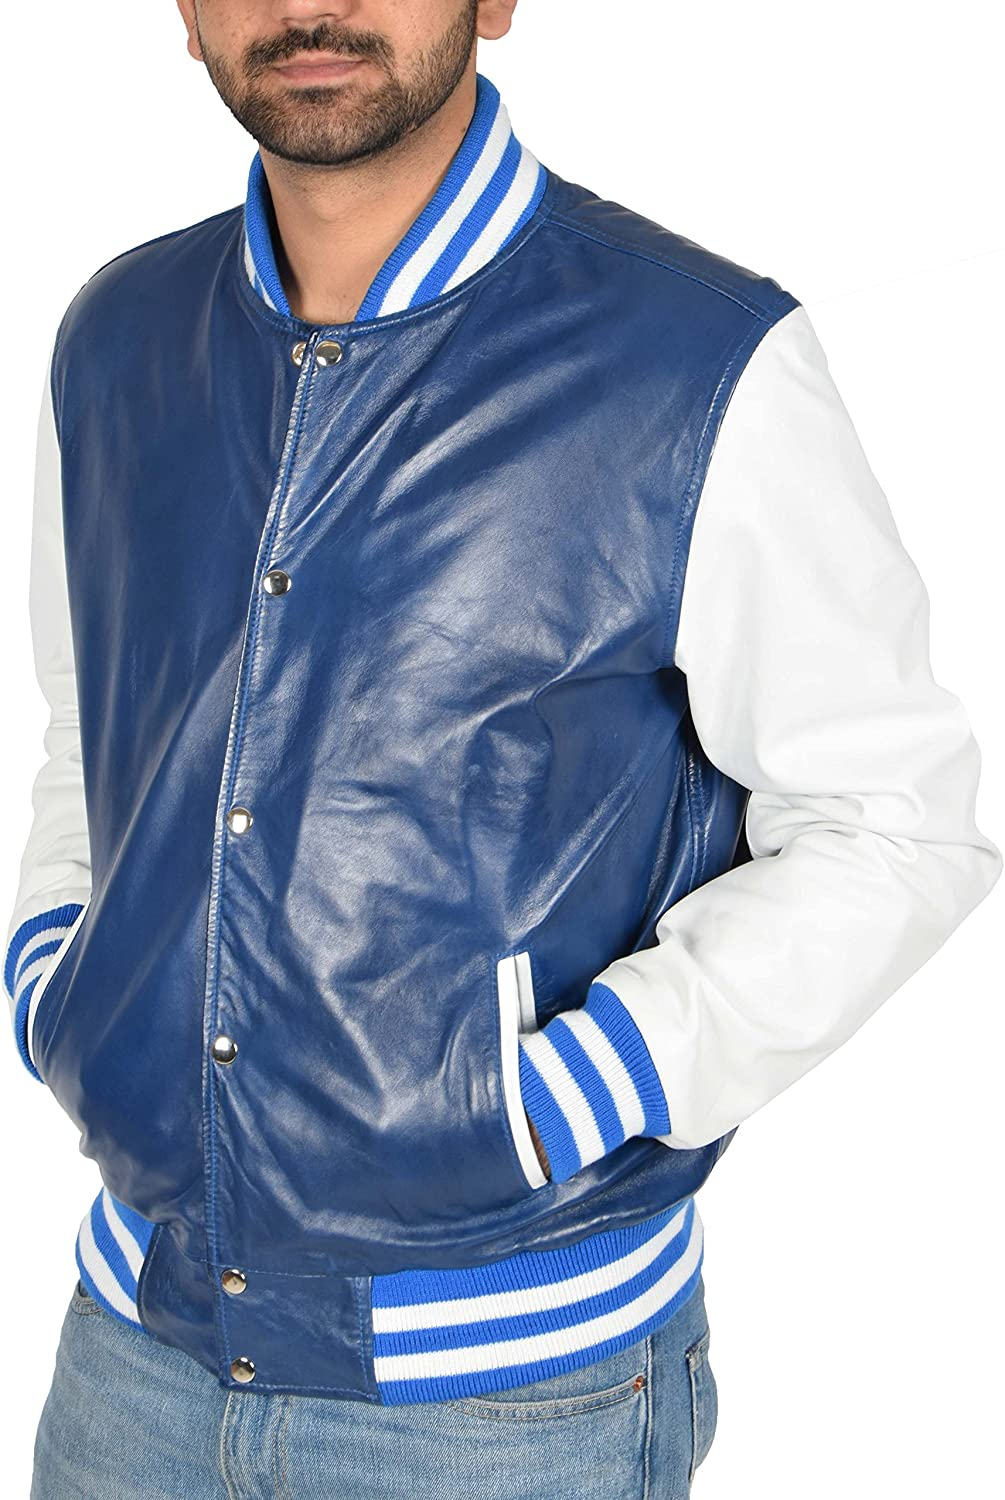 Mens Real Leather Varsity College Boy Jacket Bomber Baseball Style Garry Blue